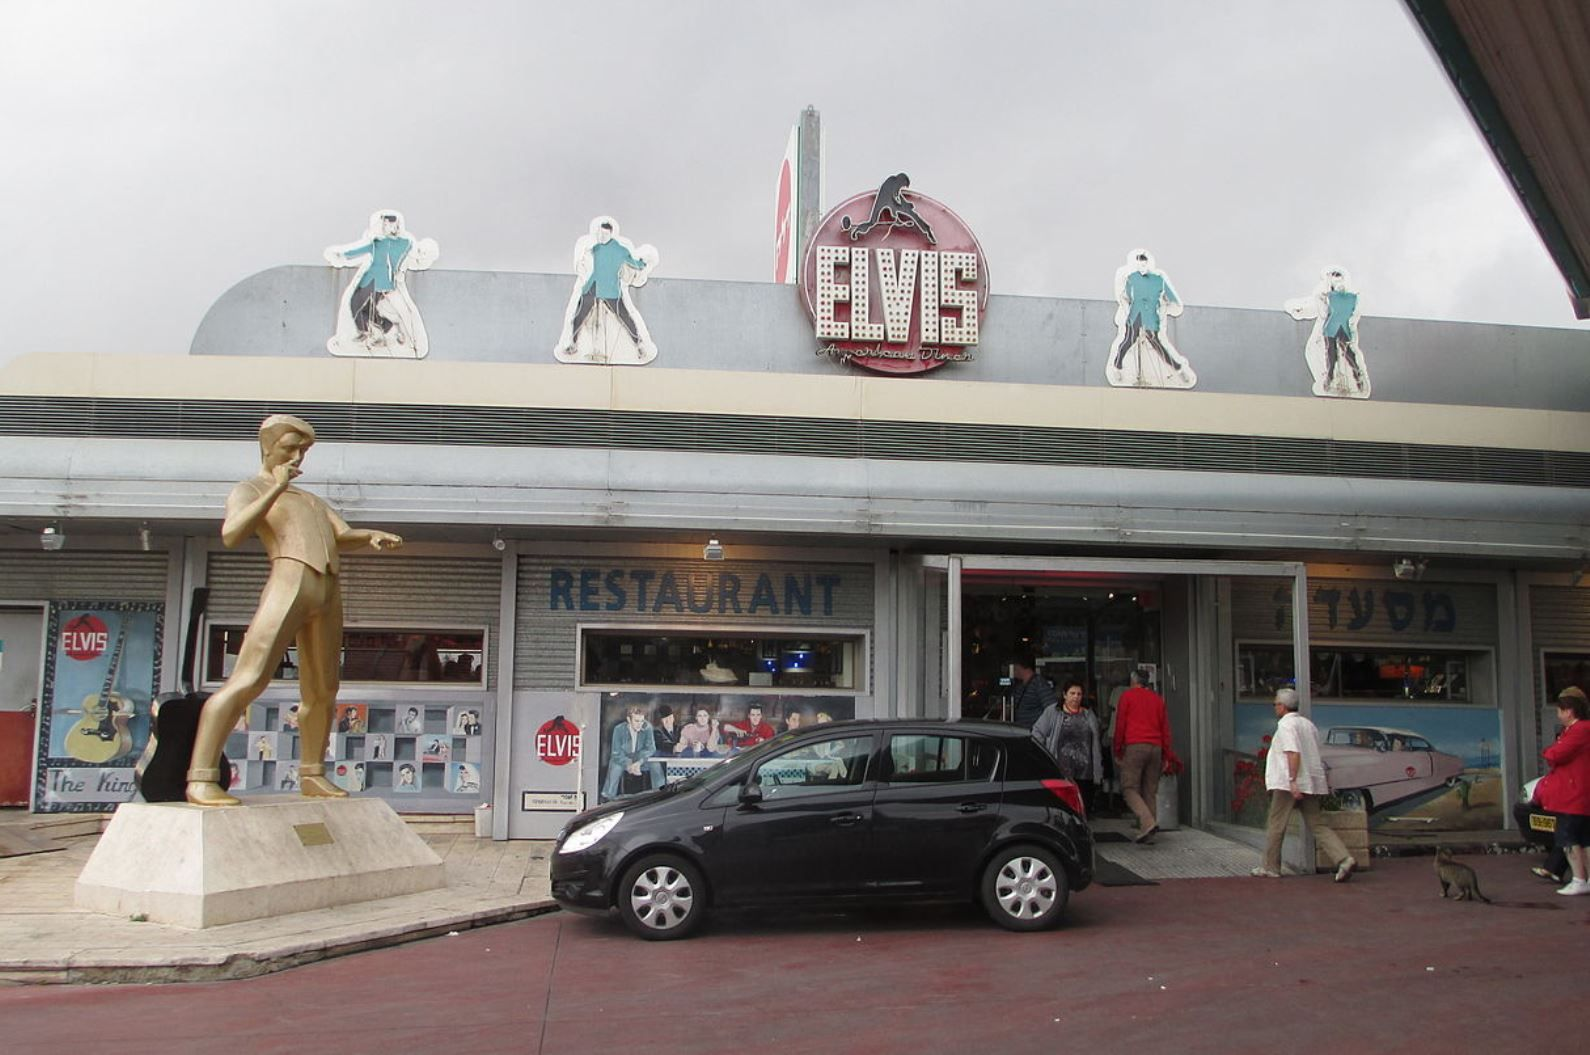 Photo of Elvis Inn via Wikimedia Commons.